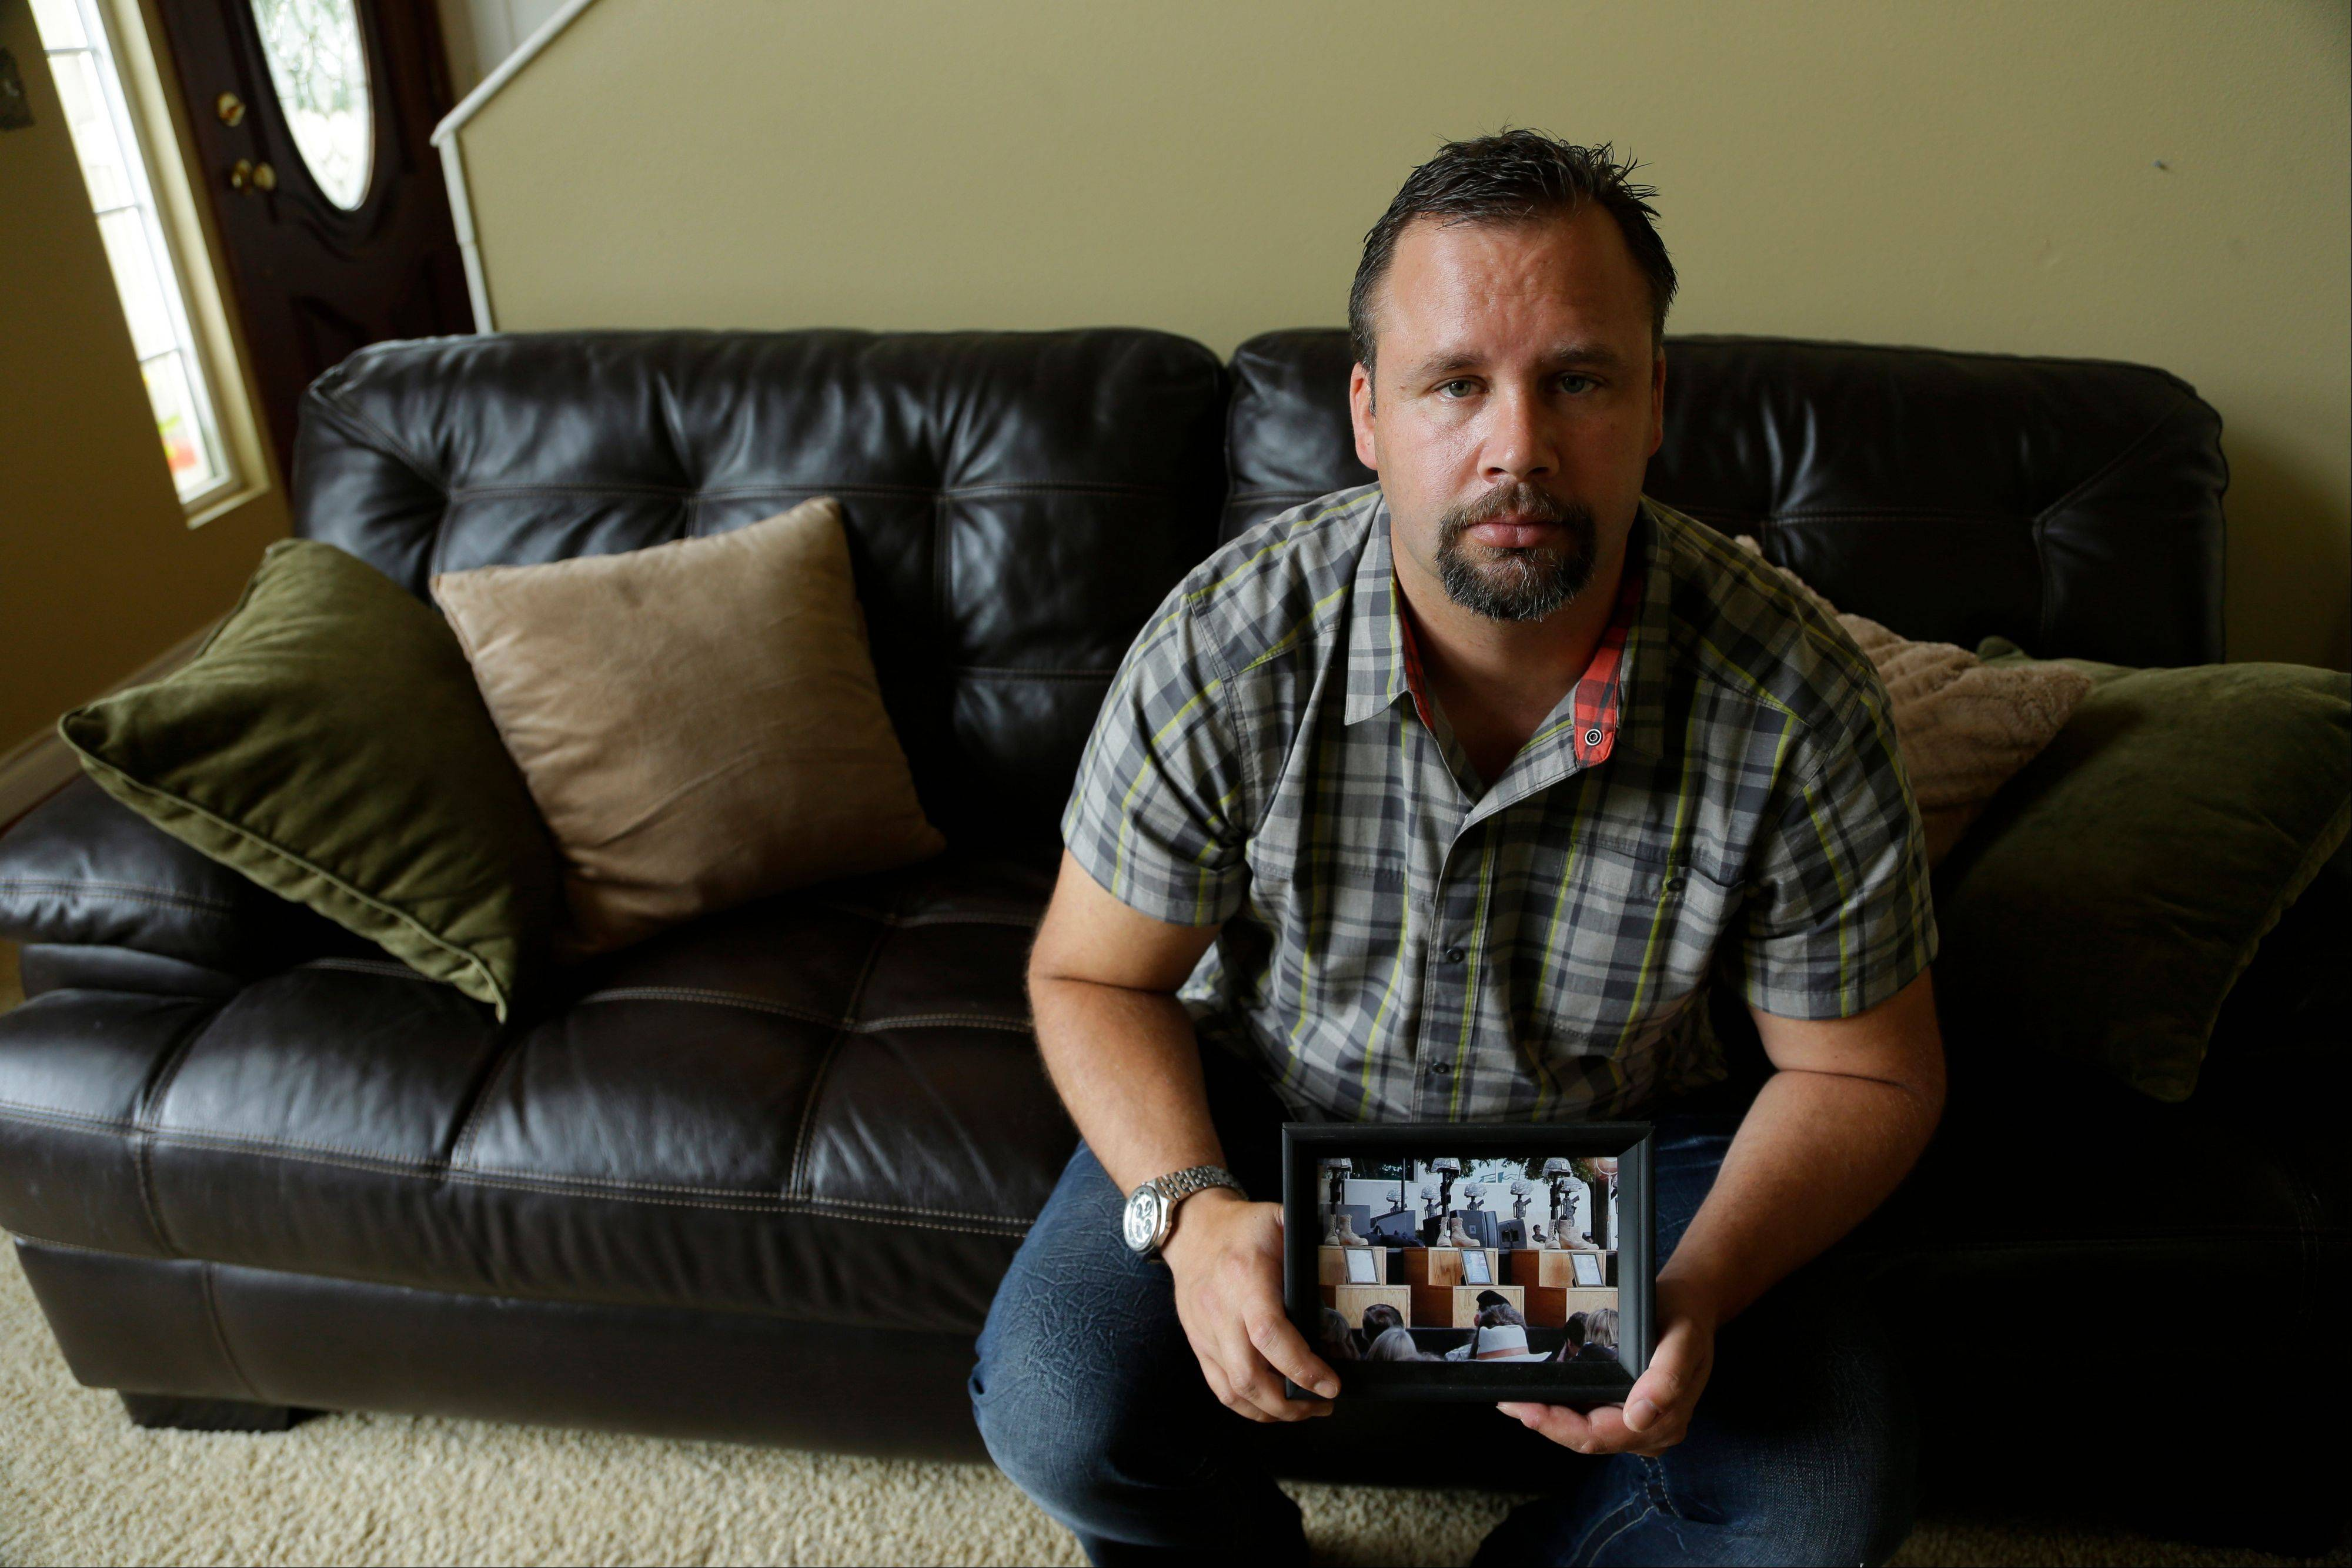 Retired U.S. Army Staff Sgt. Shawn Manning holds a photograph from the memorial for victims of the 2009 mass shooting at Fort Hood, Texas, at his home in Lacey, Wash. Manning still carries two bullets in his body from the shooting that killed 13 and wounded over 30.